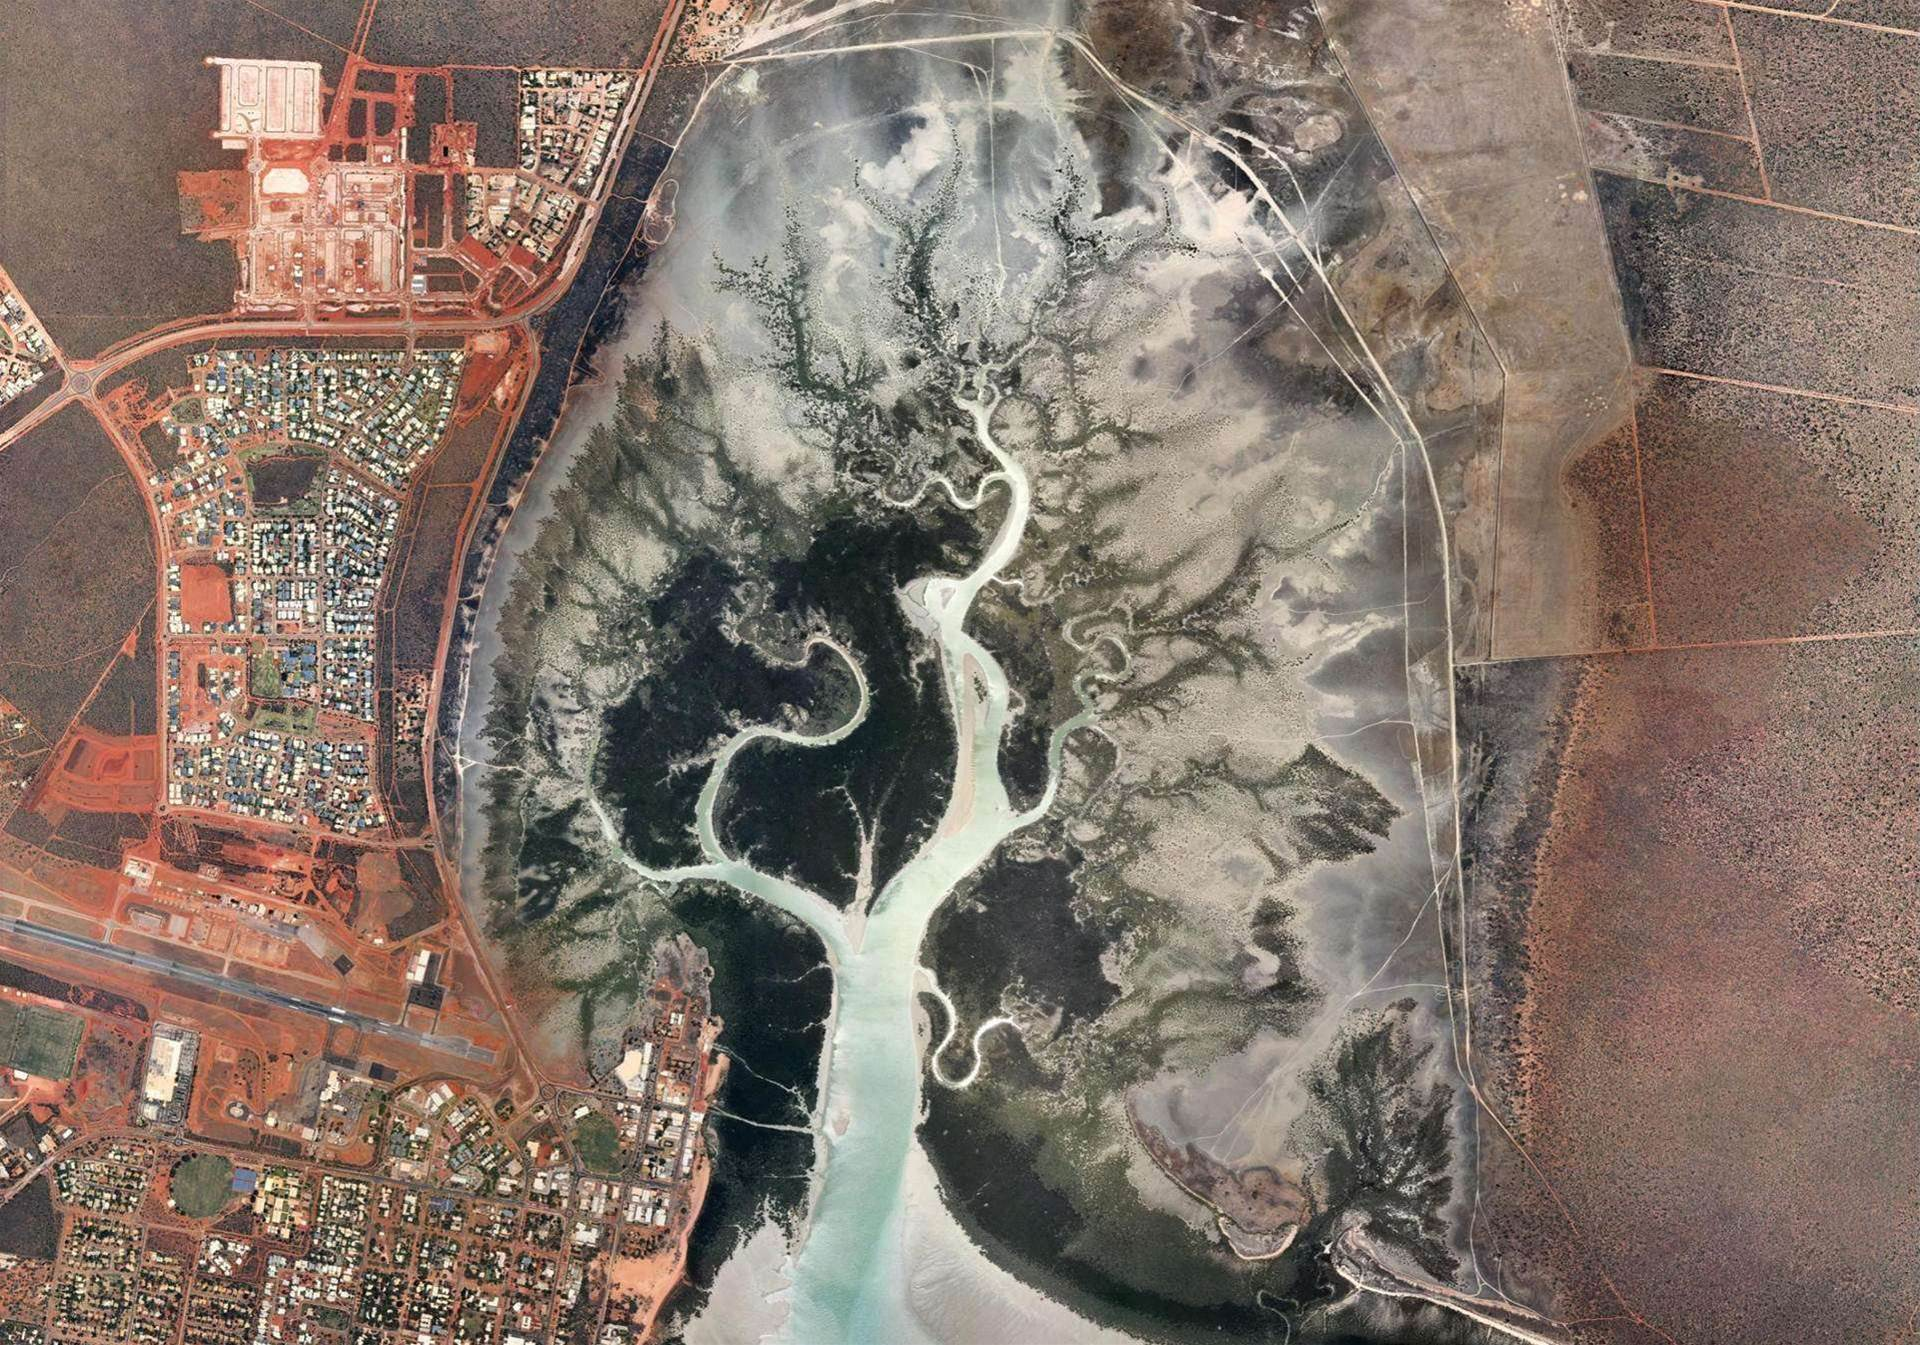 Nearmap's 'Hyperpod' can simultaneously shoot aerial photos, four angles of oblique photos (from North, South, West and East aspects) plus terrain photography when attached to an aircraft. In the following gallery, we take a look at some of its handiwork.<br><br>Pictured: Aerial view of Broome in Australia's North West.